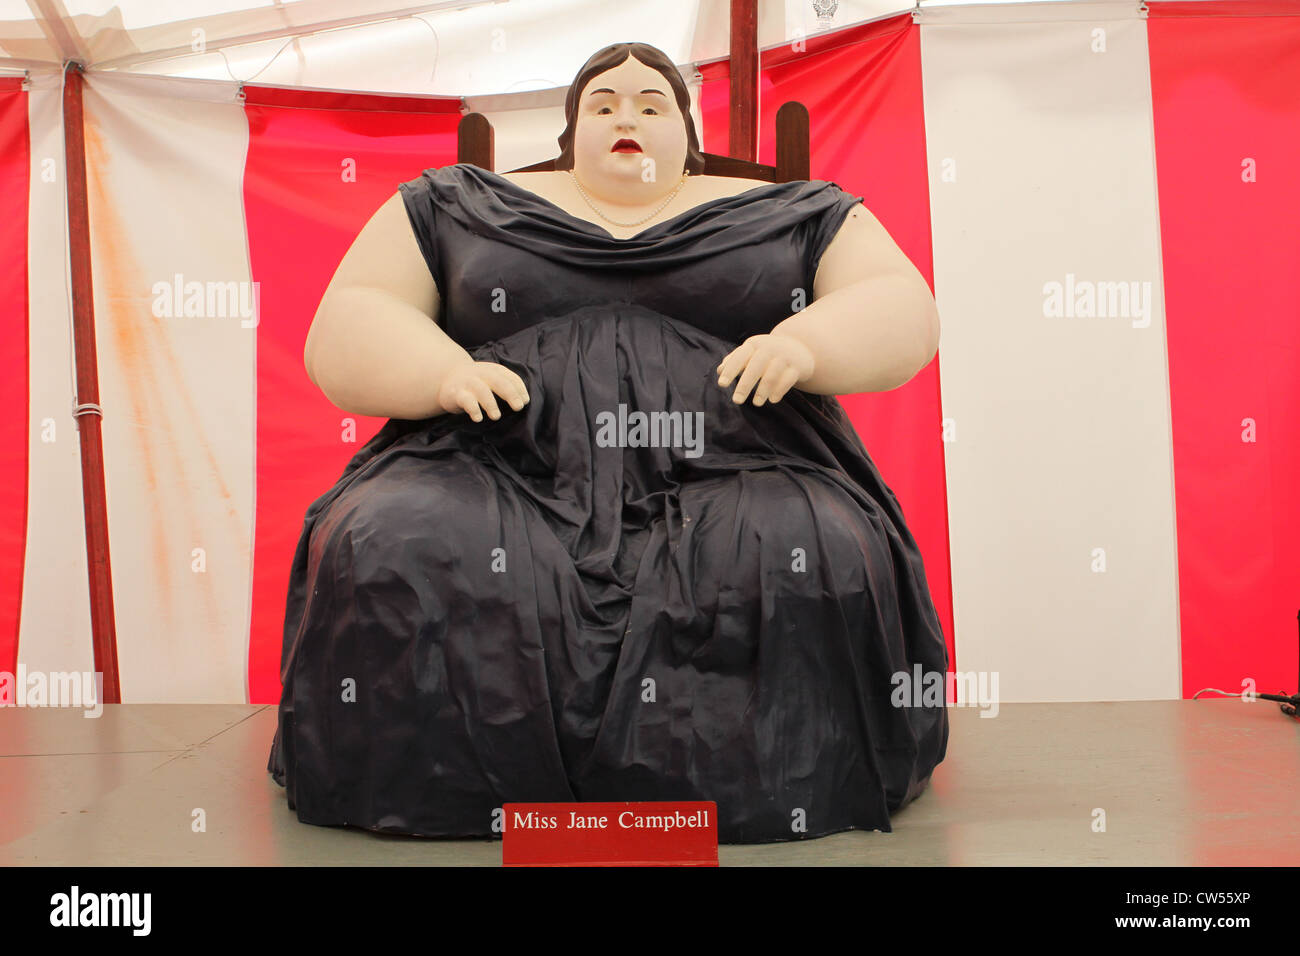 A Statue Of Miss Jane Campbell  The Fat Lady  A Circus